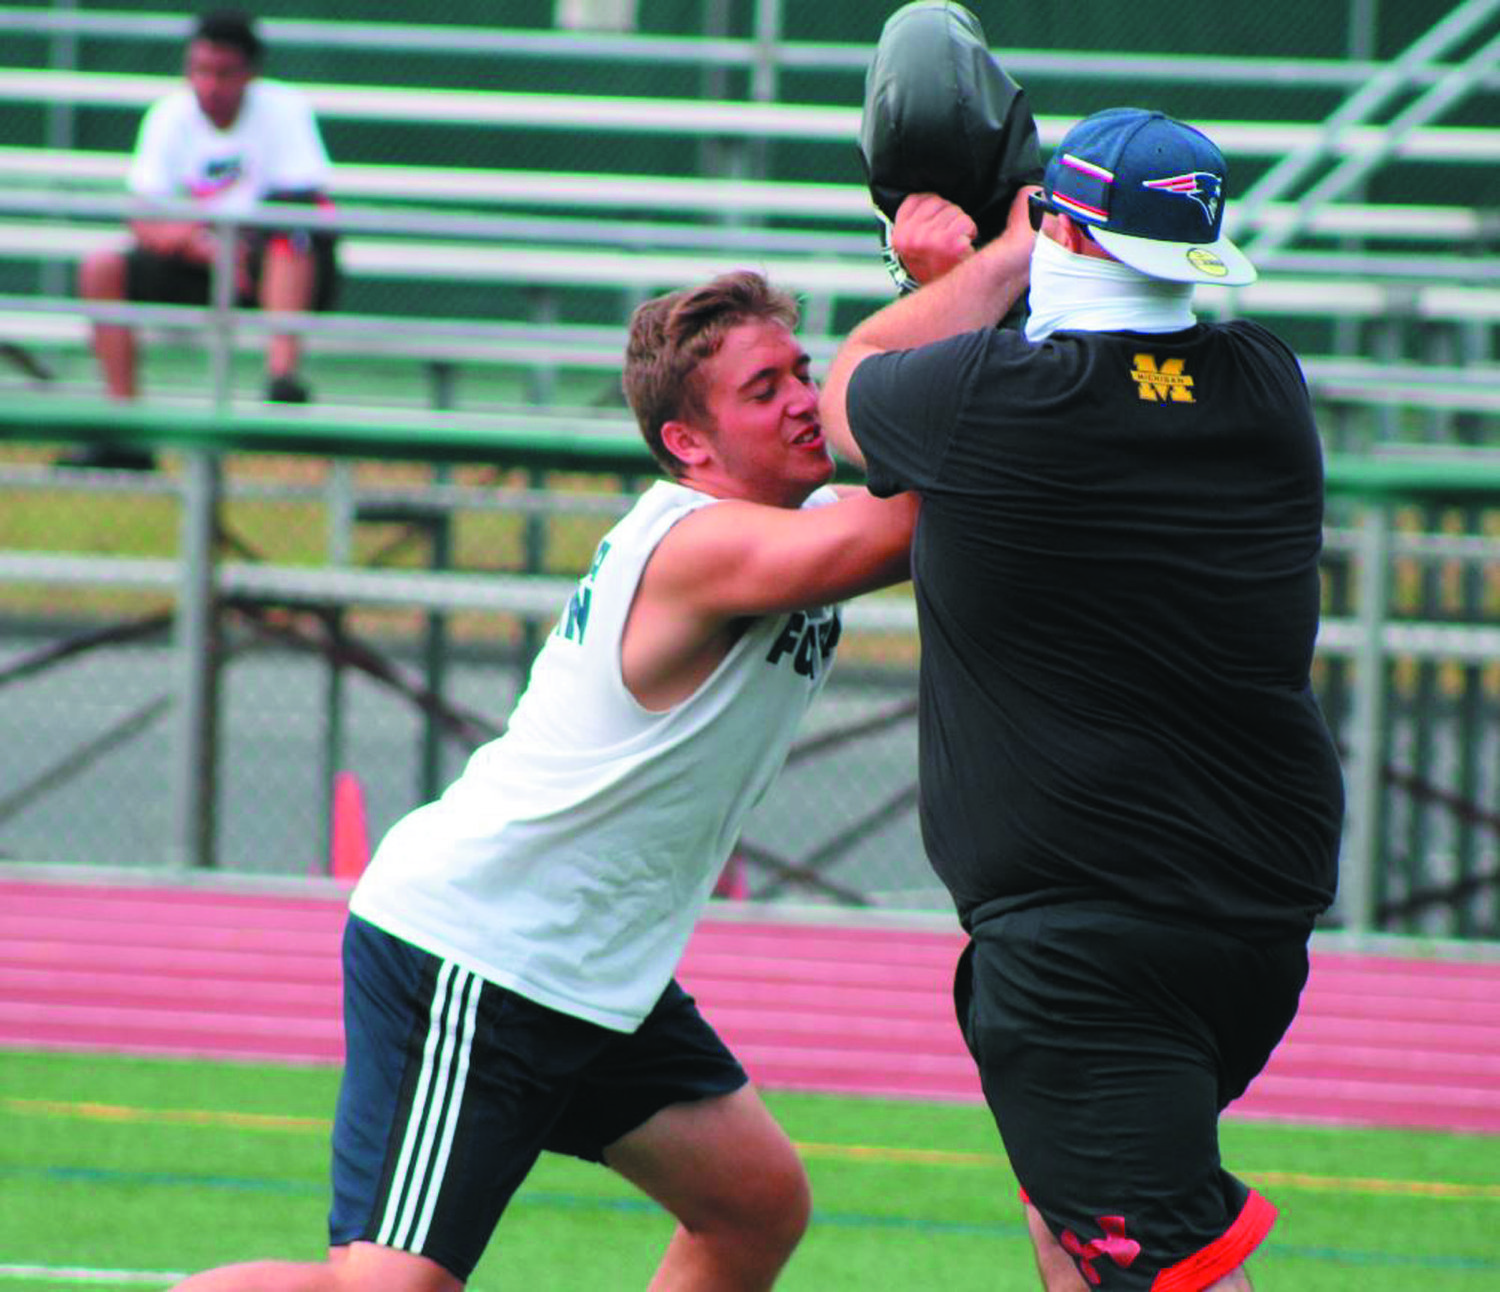 UP FRONT: A lineman works on a blocking drill.